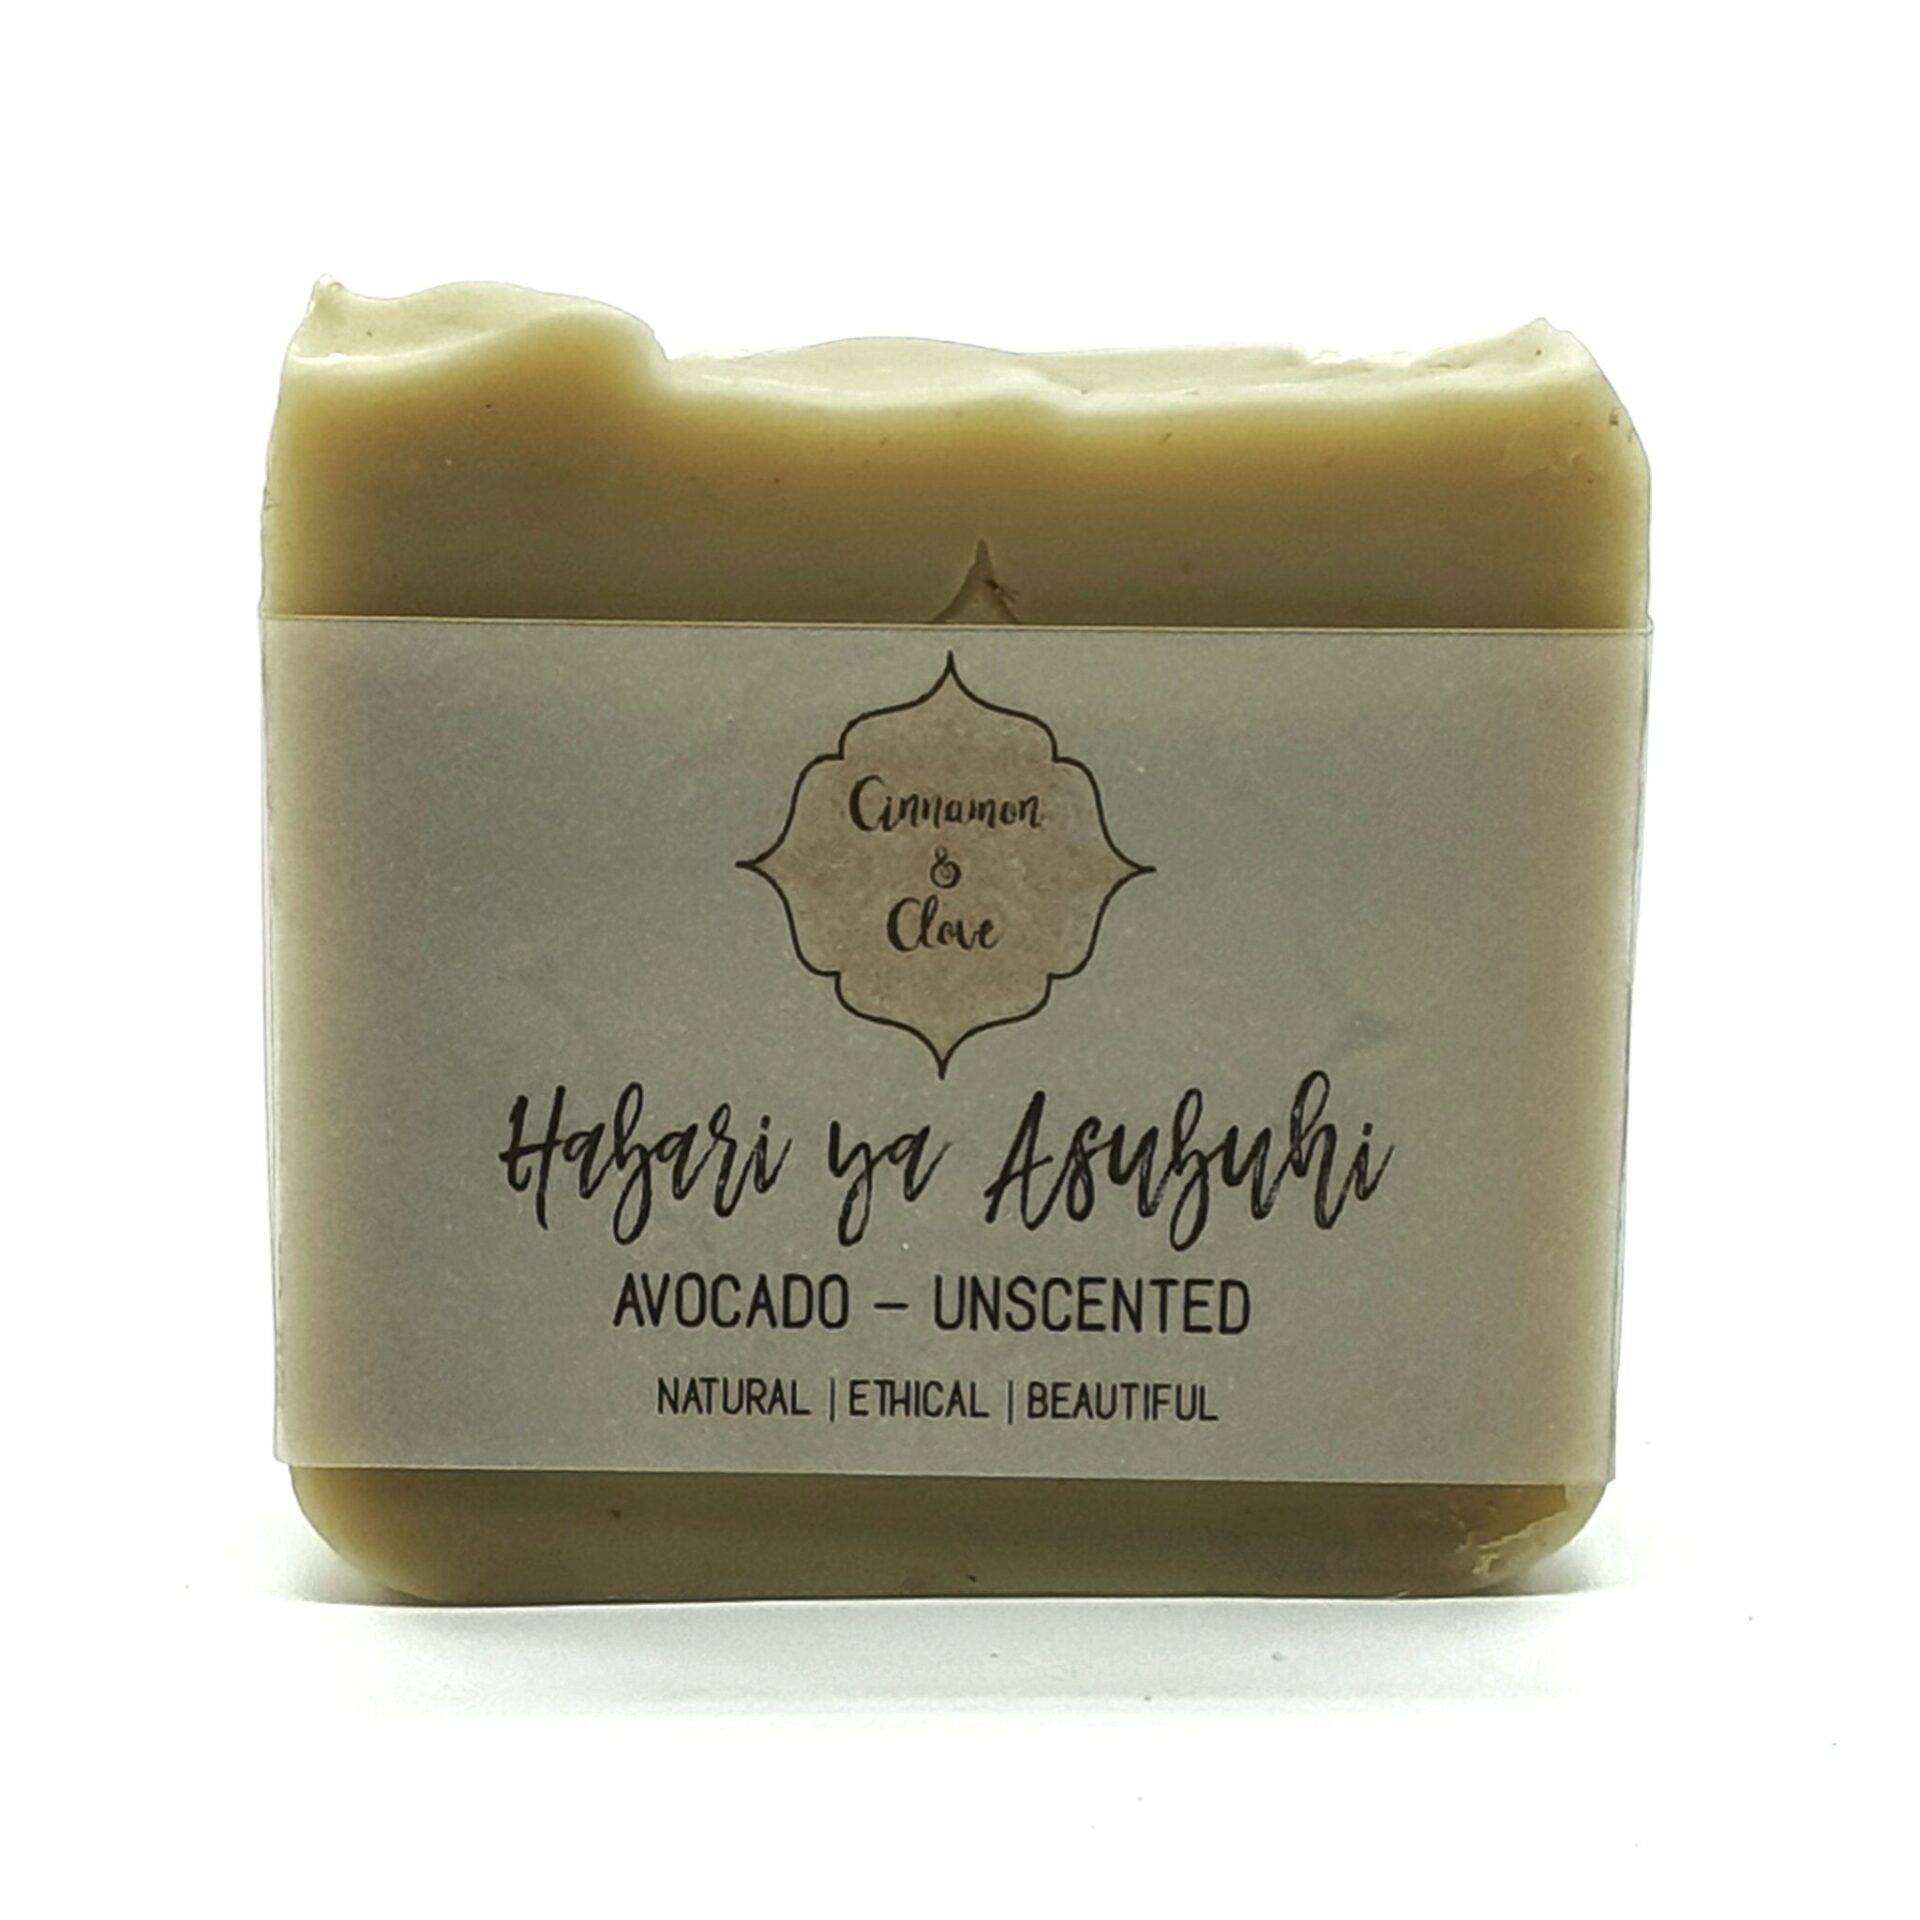 Habari Ya Asubuhi – Avocado Unscented Handcrafted All Natural Artisan Soap With Avocado By Cinnamon And Clove (Fitzroy)